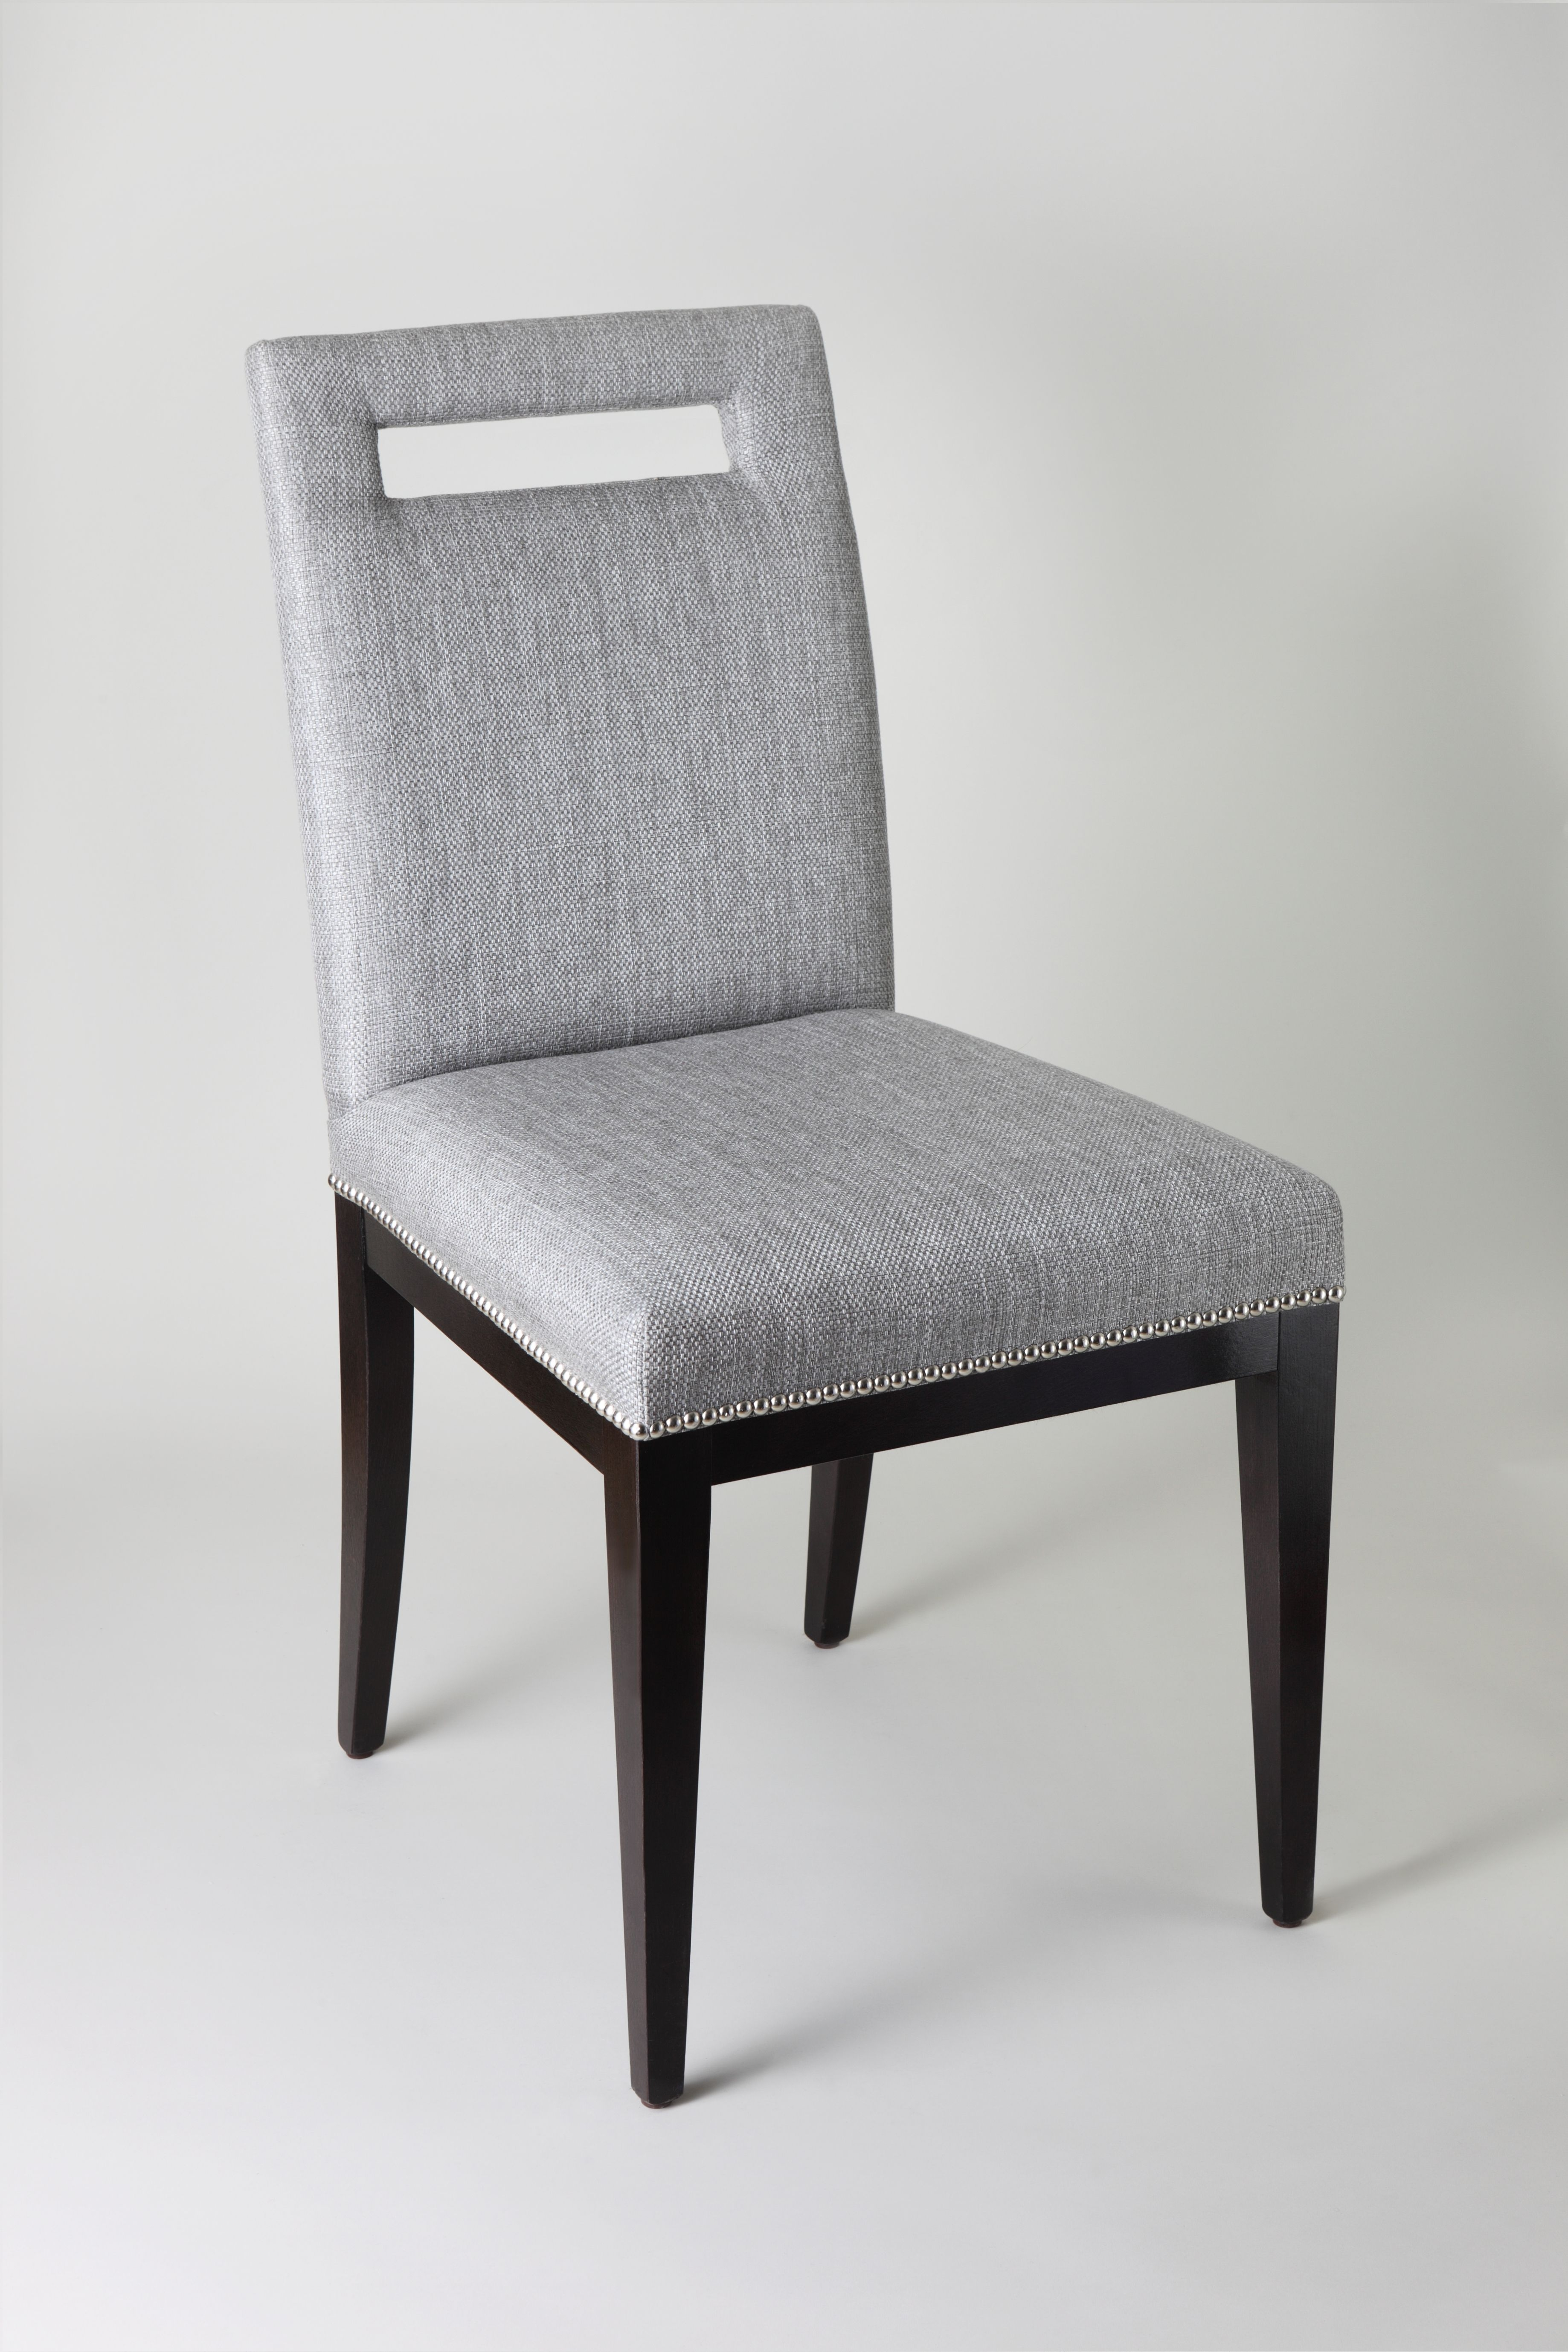 alexa grey upholstered dining chairs furniture gray